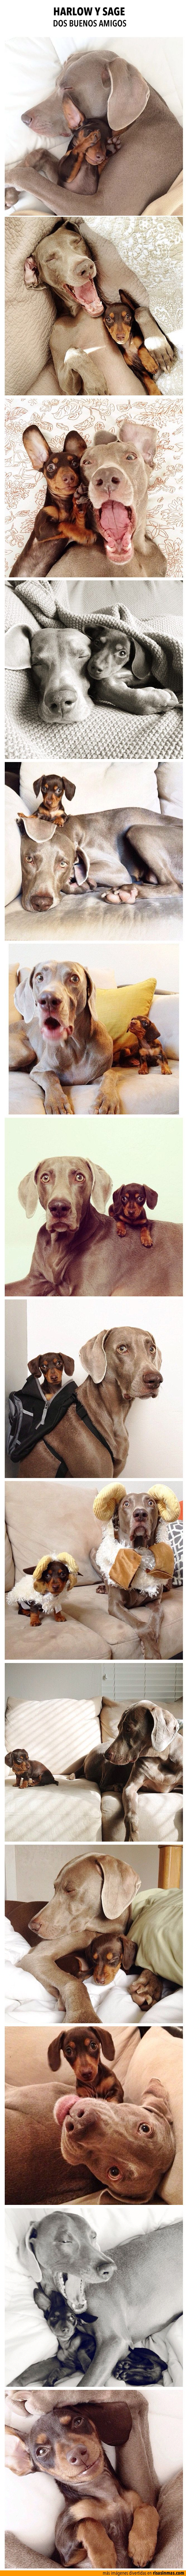 I NEED a mini weiner dog. NEED. | Harlow y Sage, dos buenos amigos.